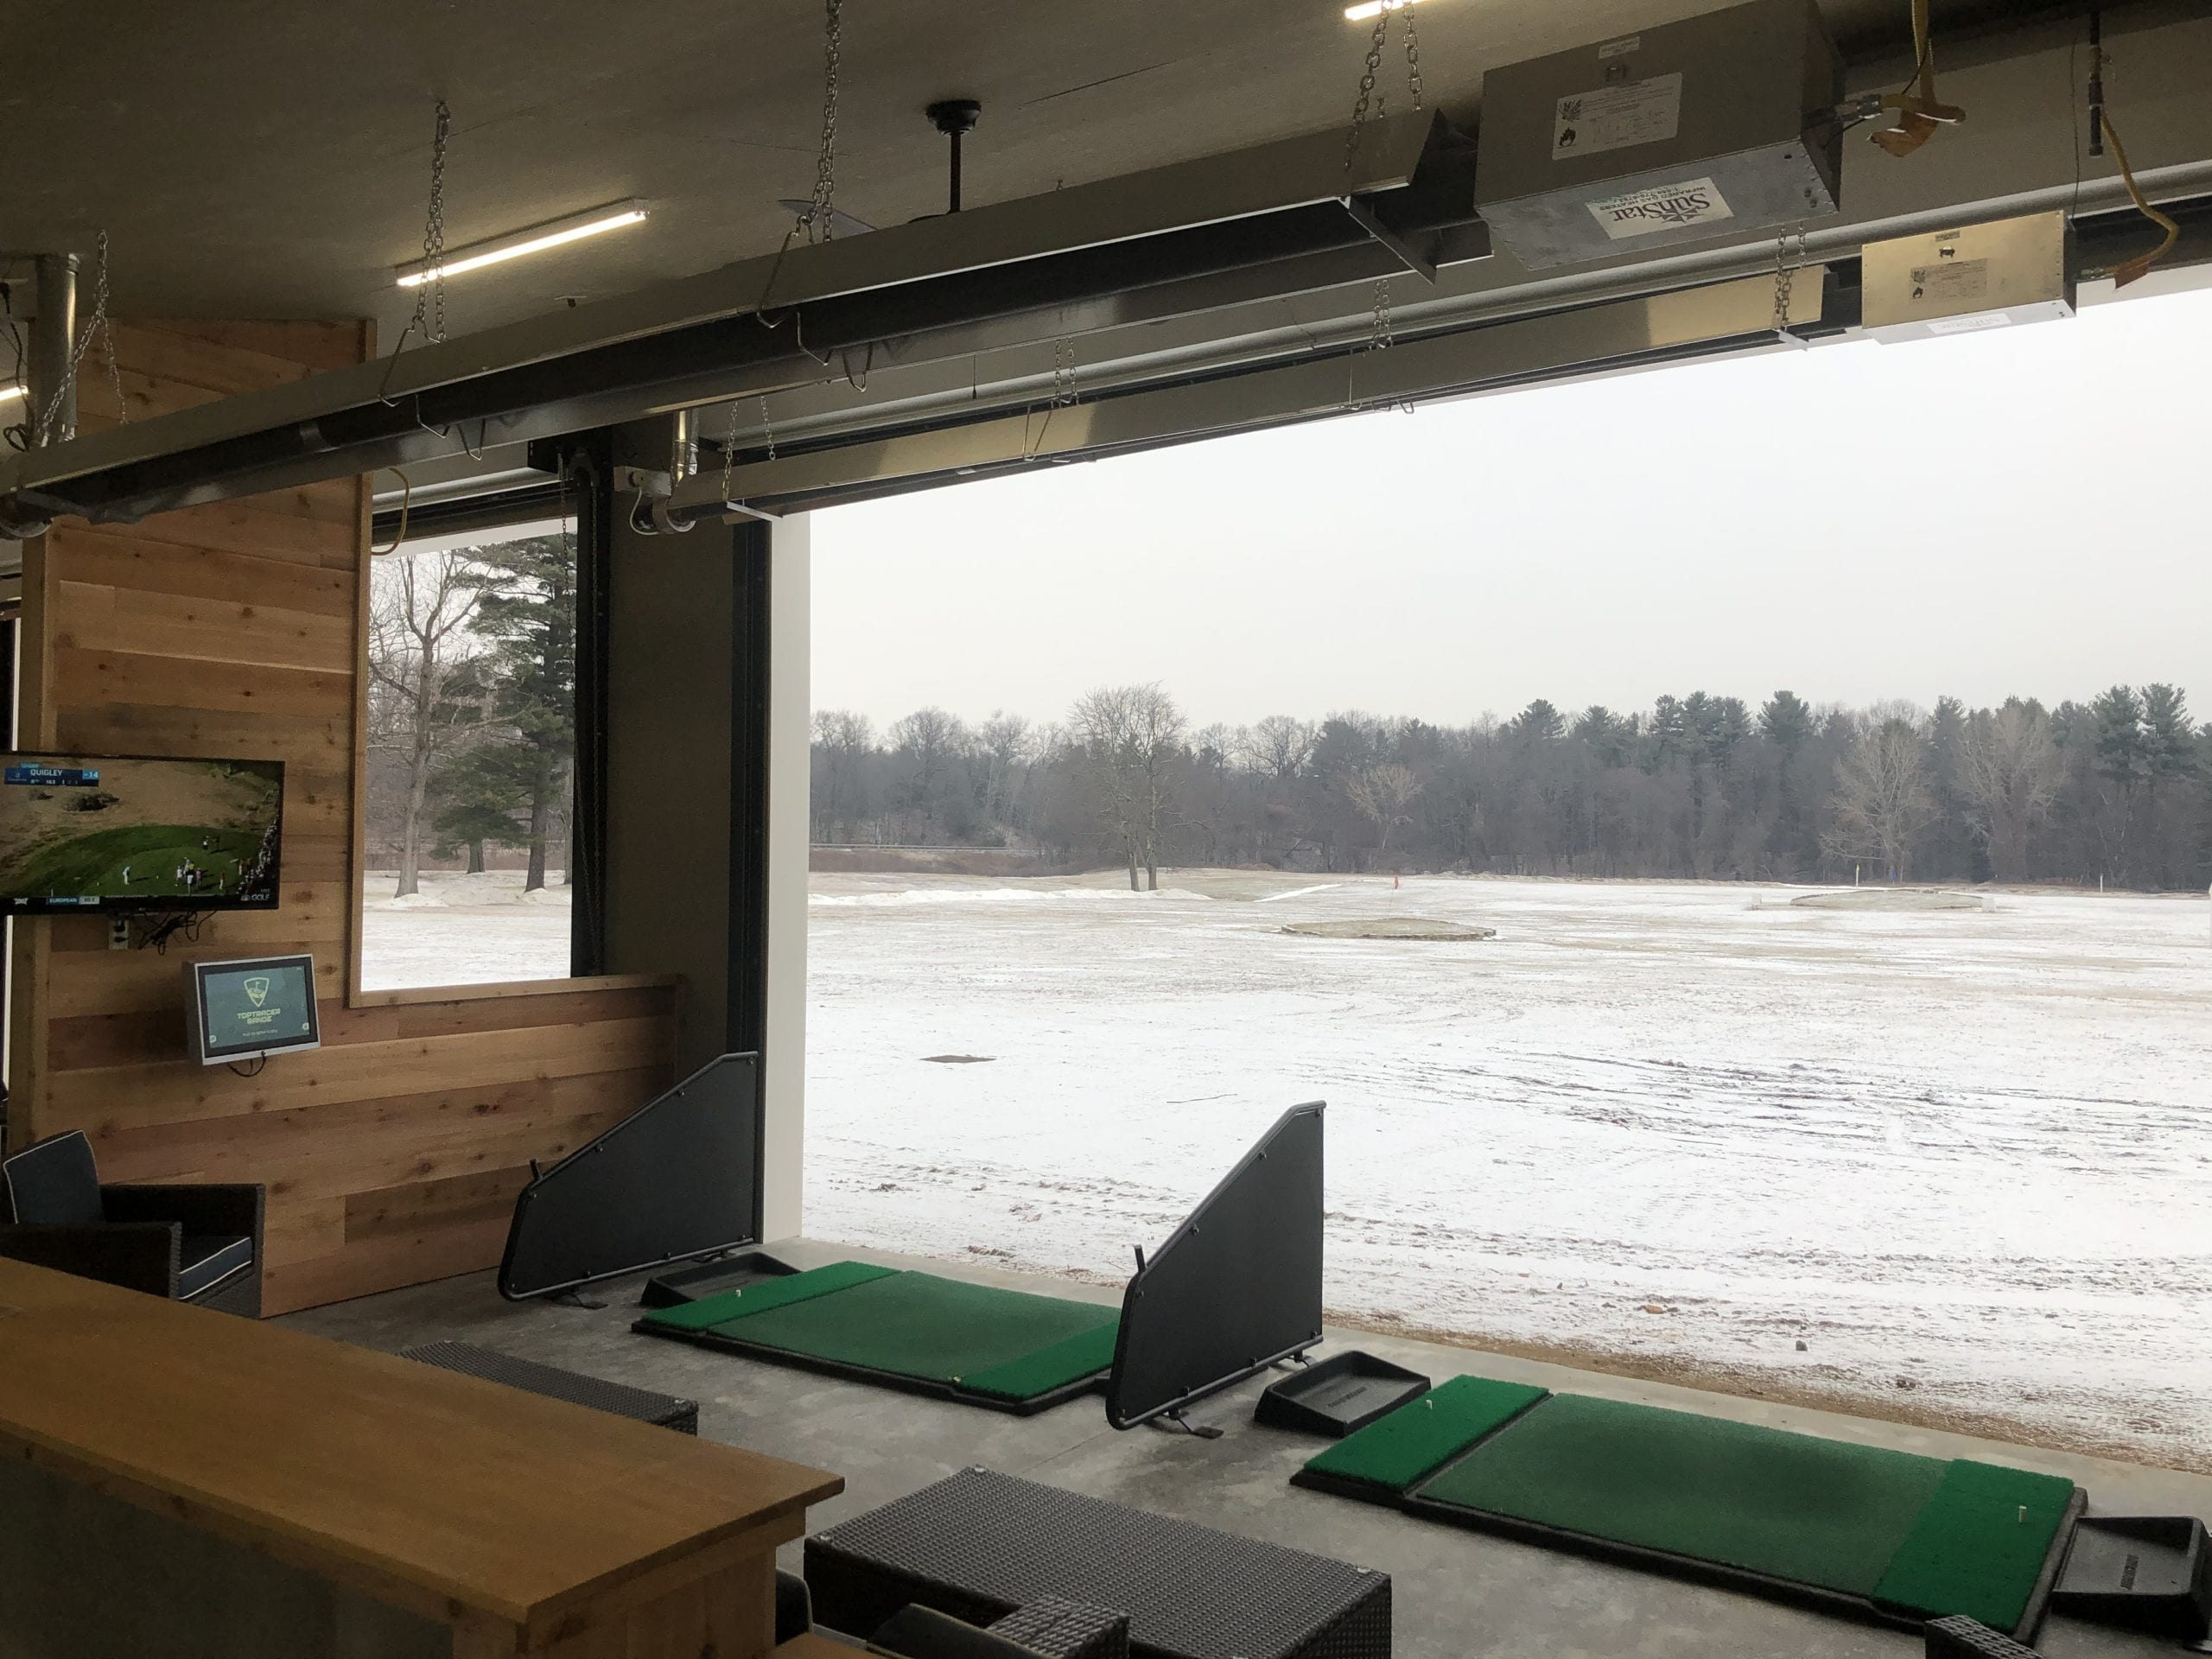 Top Tracer Golf Driving Range Clifton Park, New York